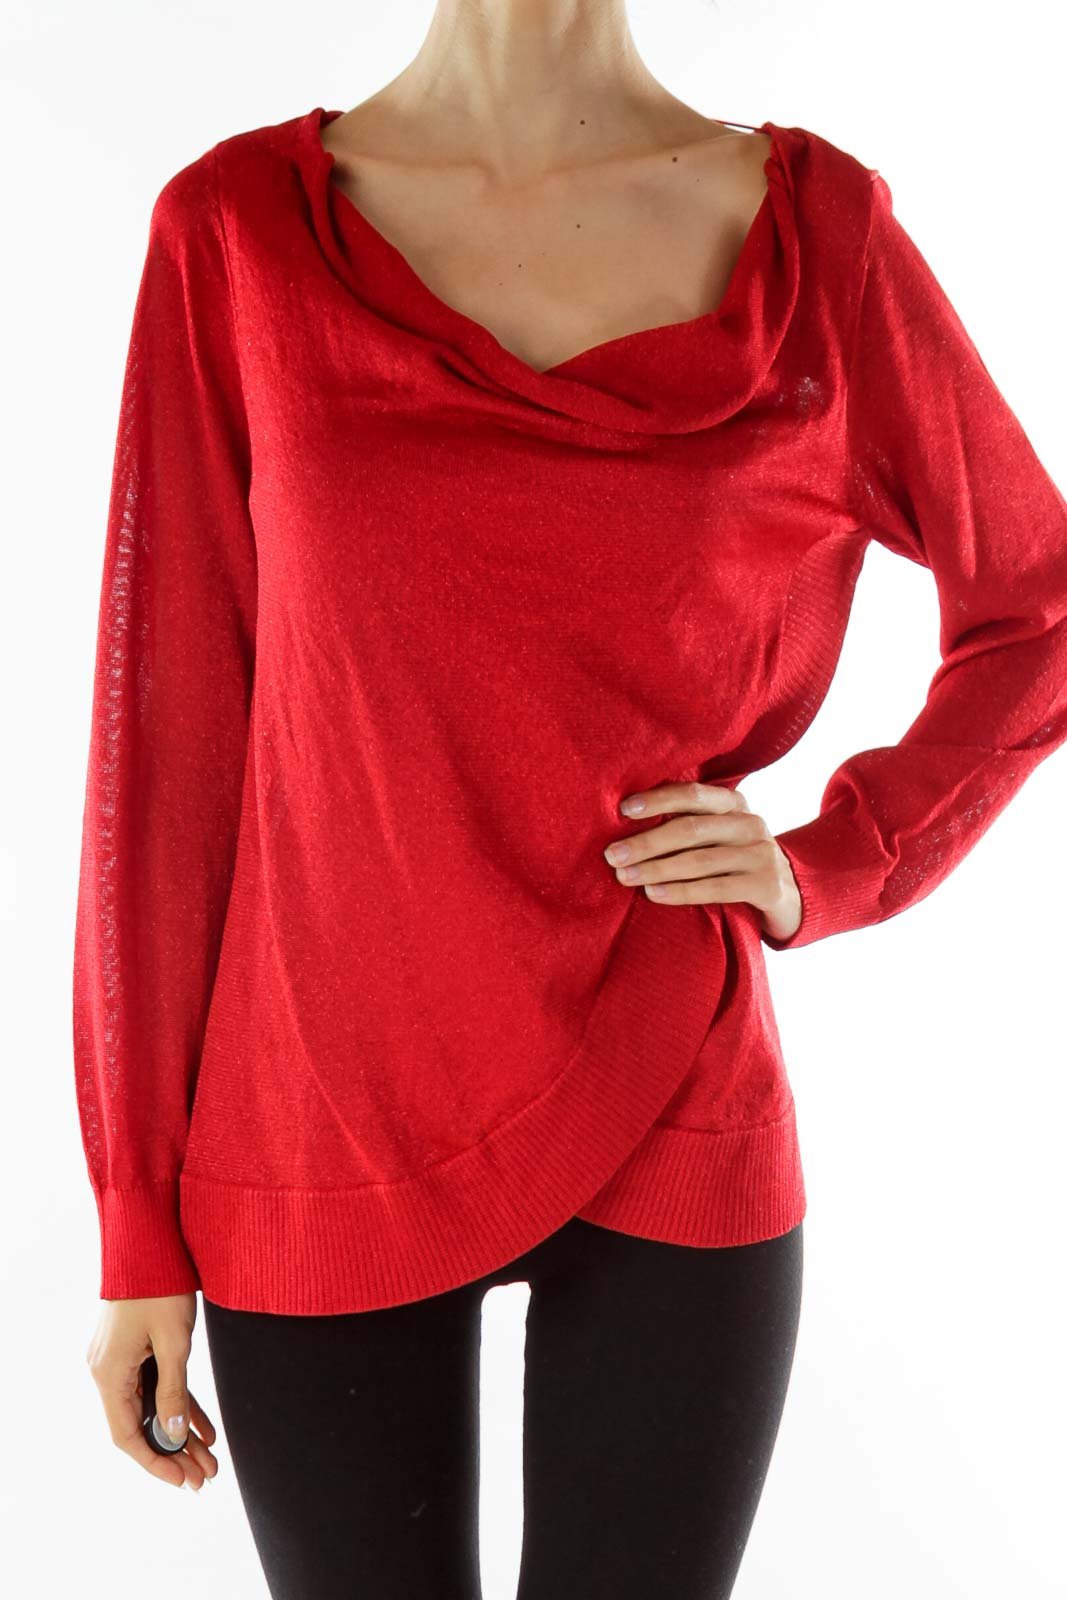 Red Shimmery Knit Top